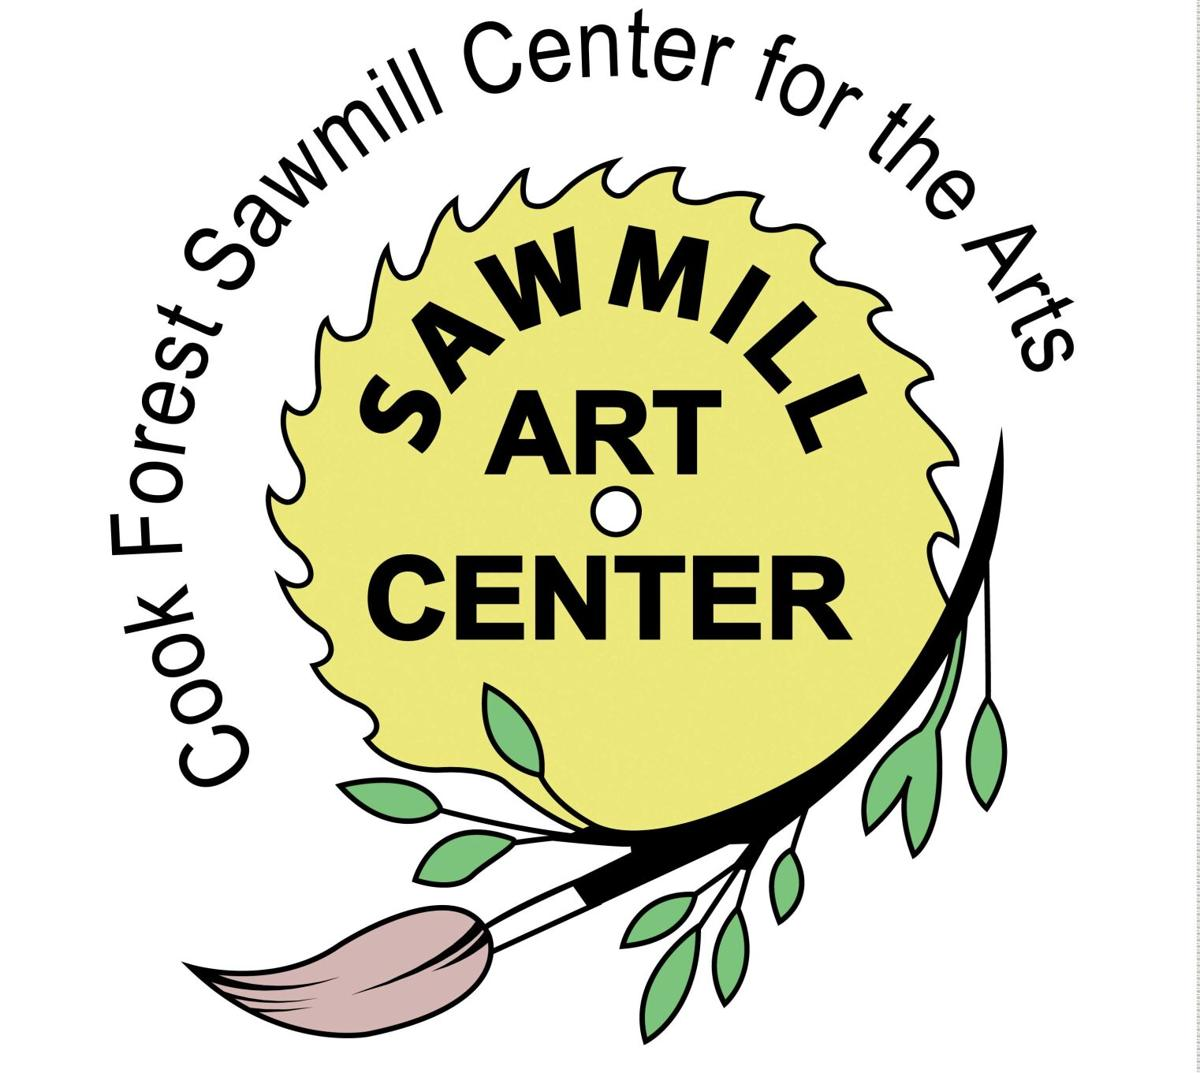 Sawmill Center director looking for 'really productive summer'